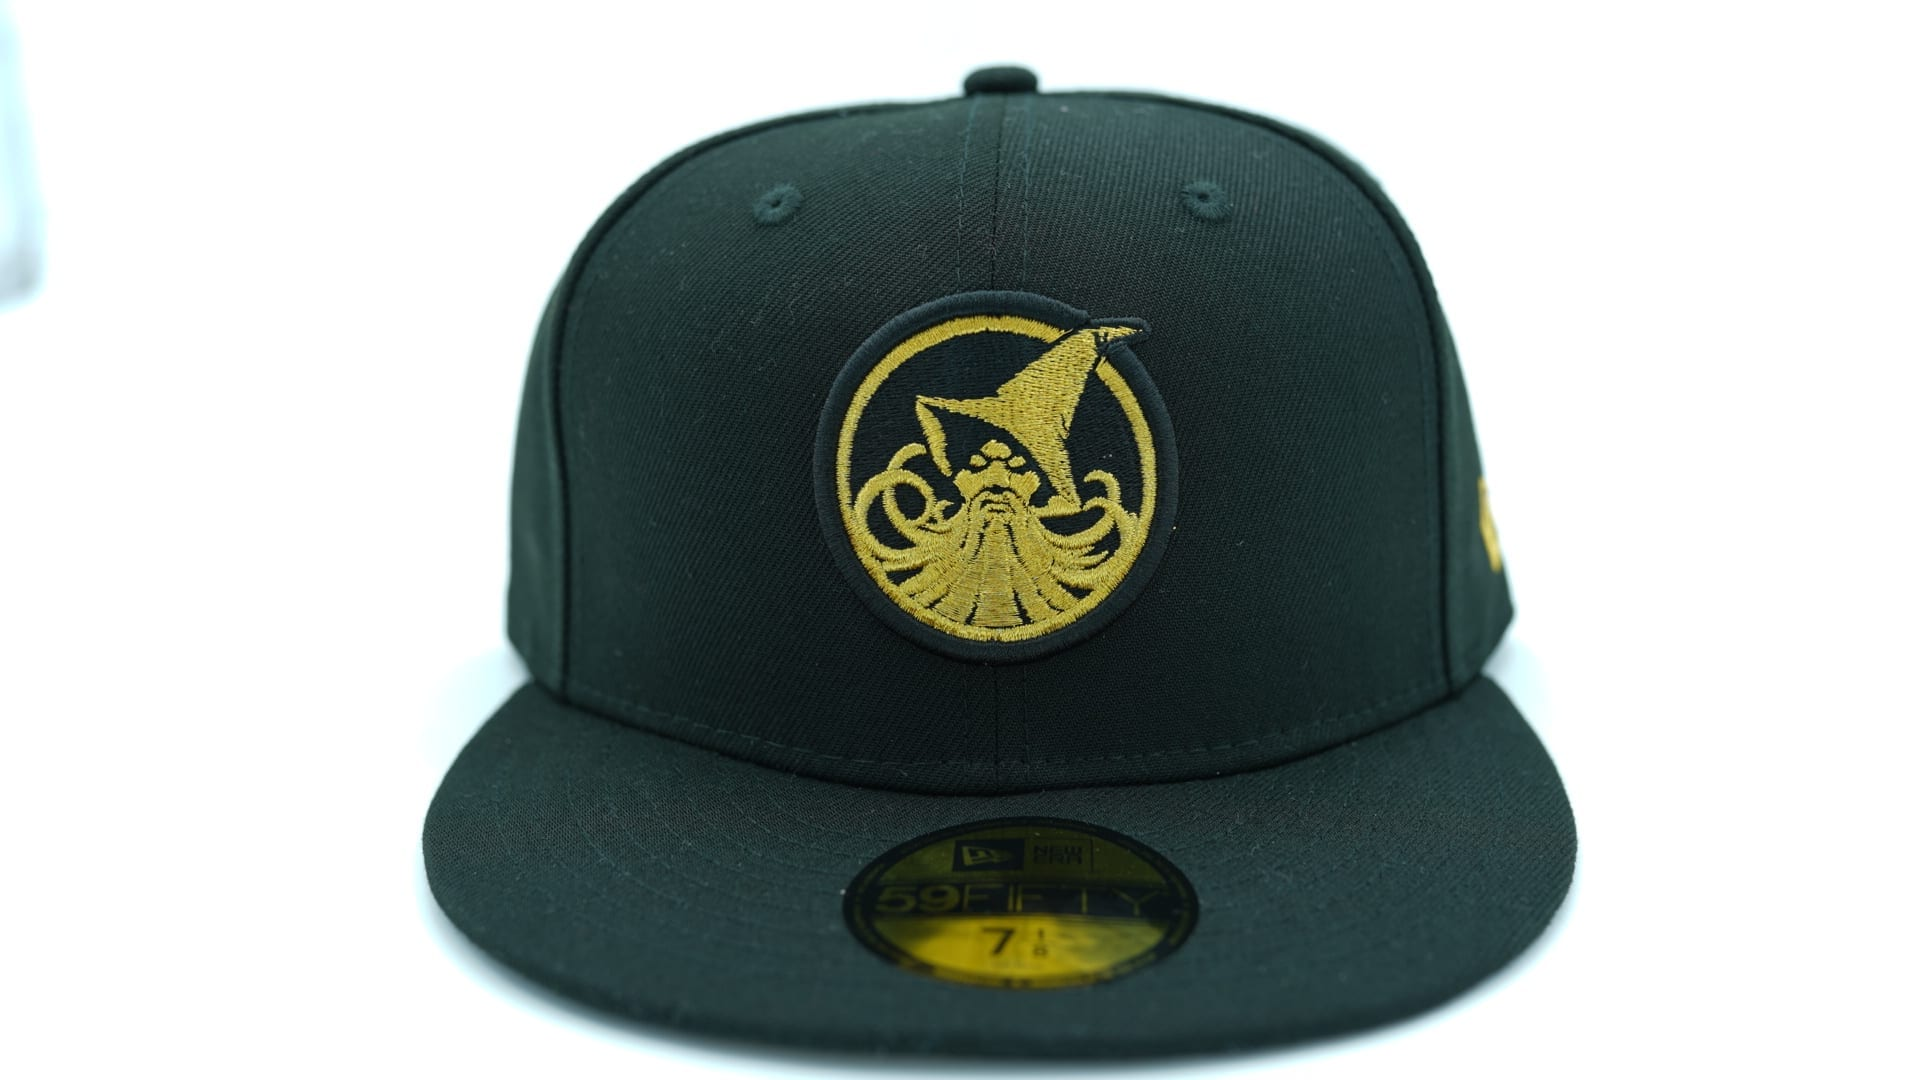 New York Mets '97 Ice Cream 59Fifty Fitted Cap by NEW ERA x MLB x THE 7 LINE ARMY